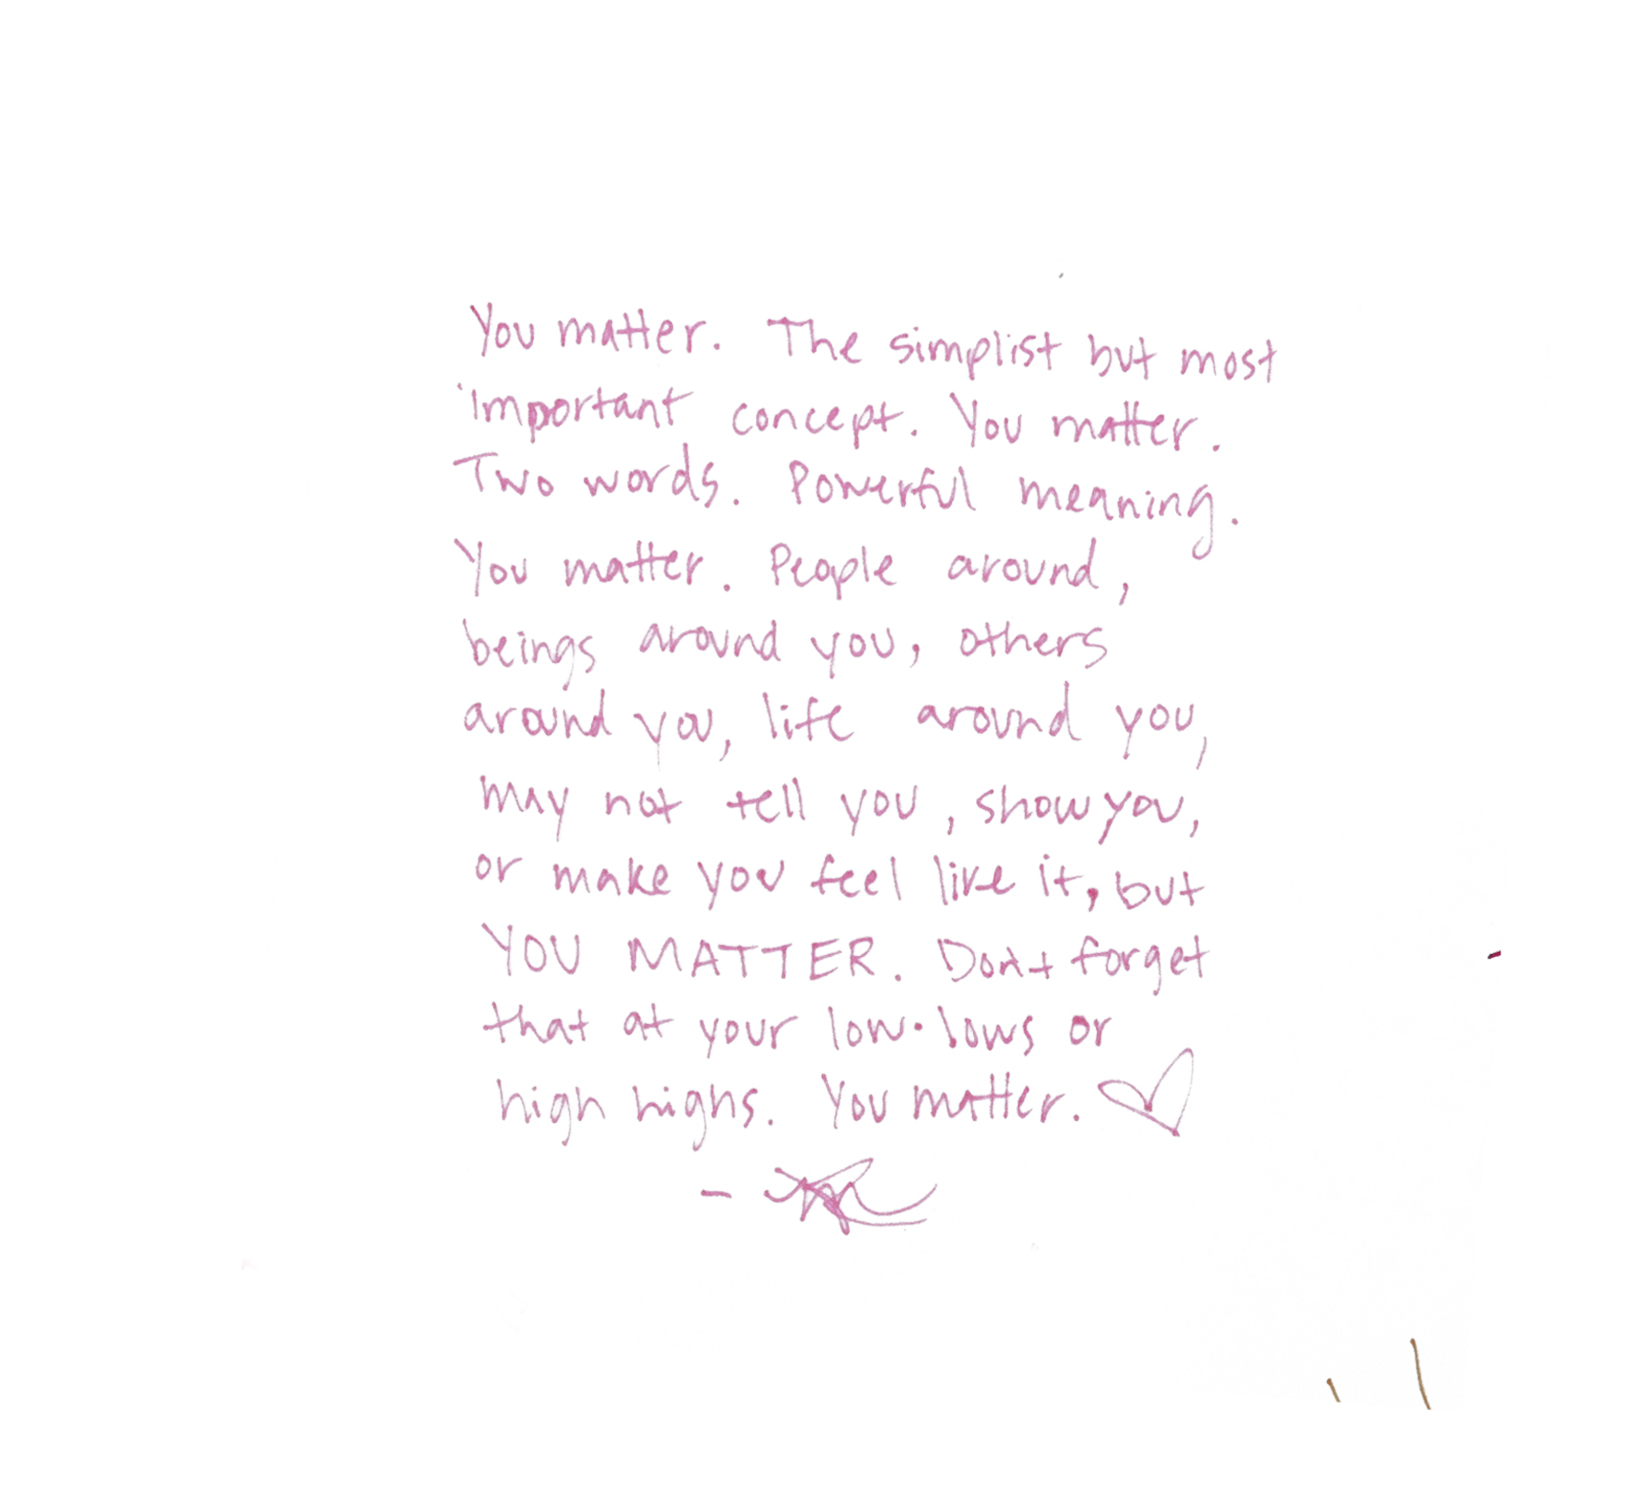 """You matter. The simplest but most important concept. You matter. Two words. Powerful meaning. You matter. People around, beings around you, others around you, life around you, may not tell you, show you, or make you feel like it, but YOU MATTER. Don't forget that at your low lows or high highs. You matter."" (USA)"